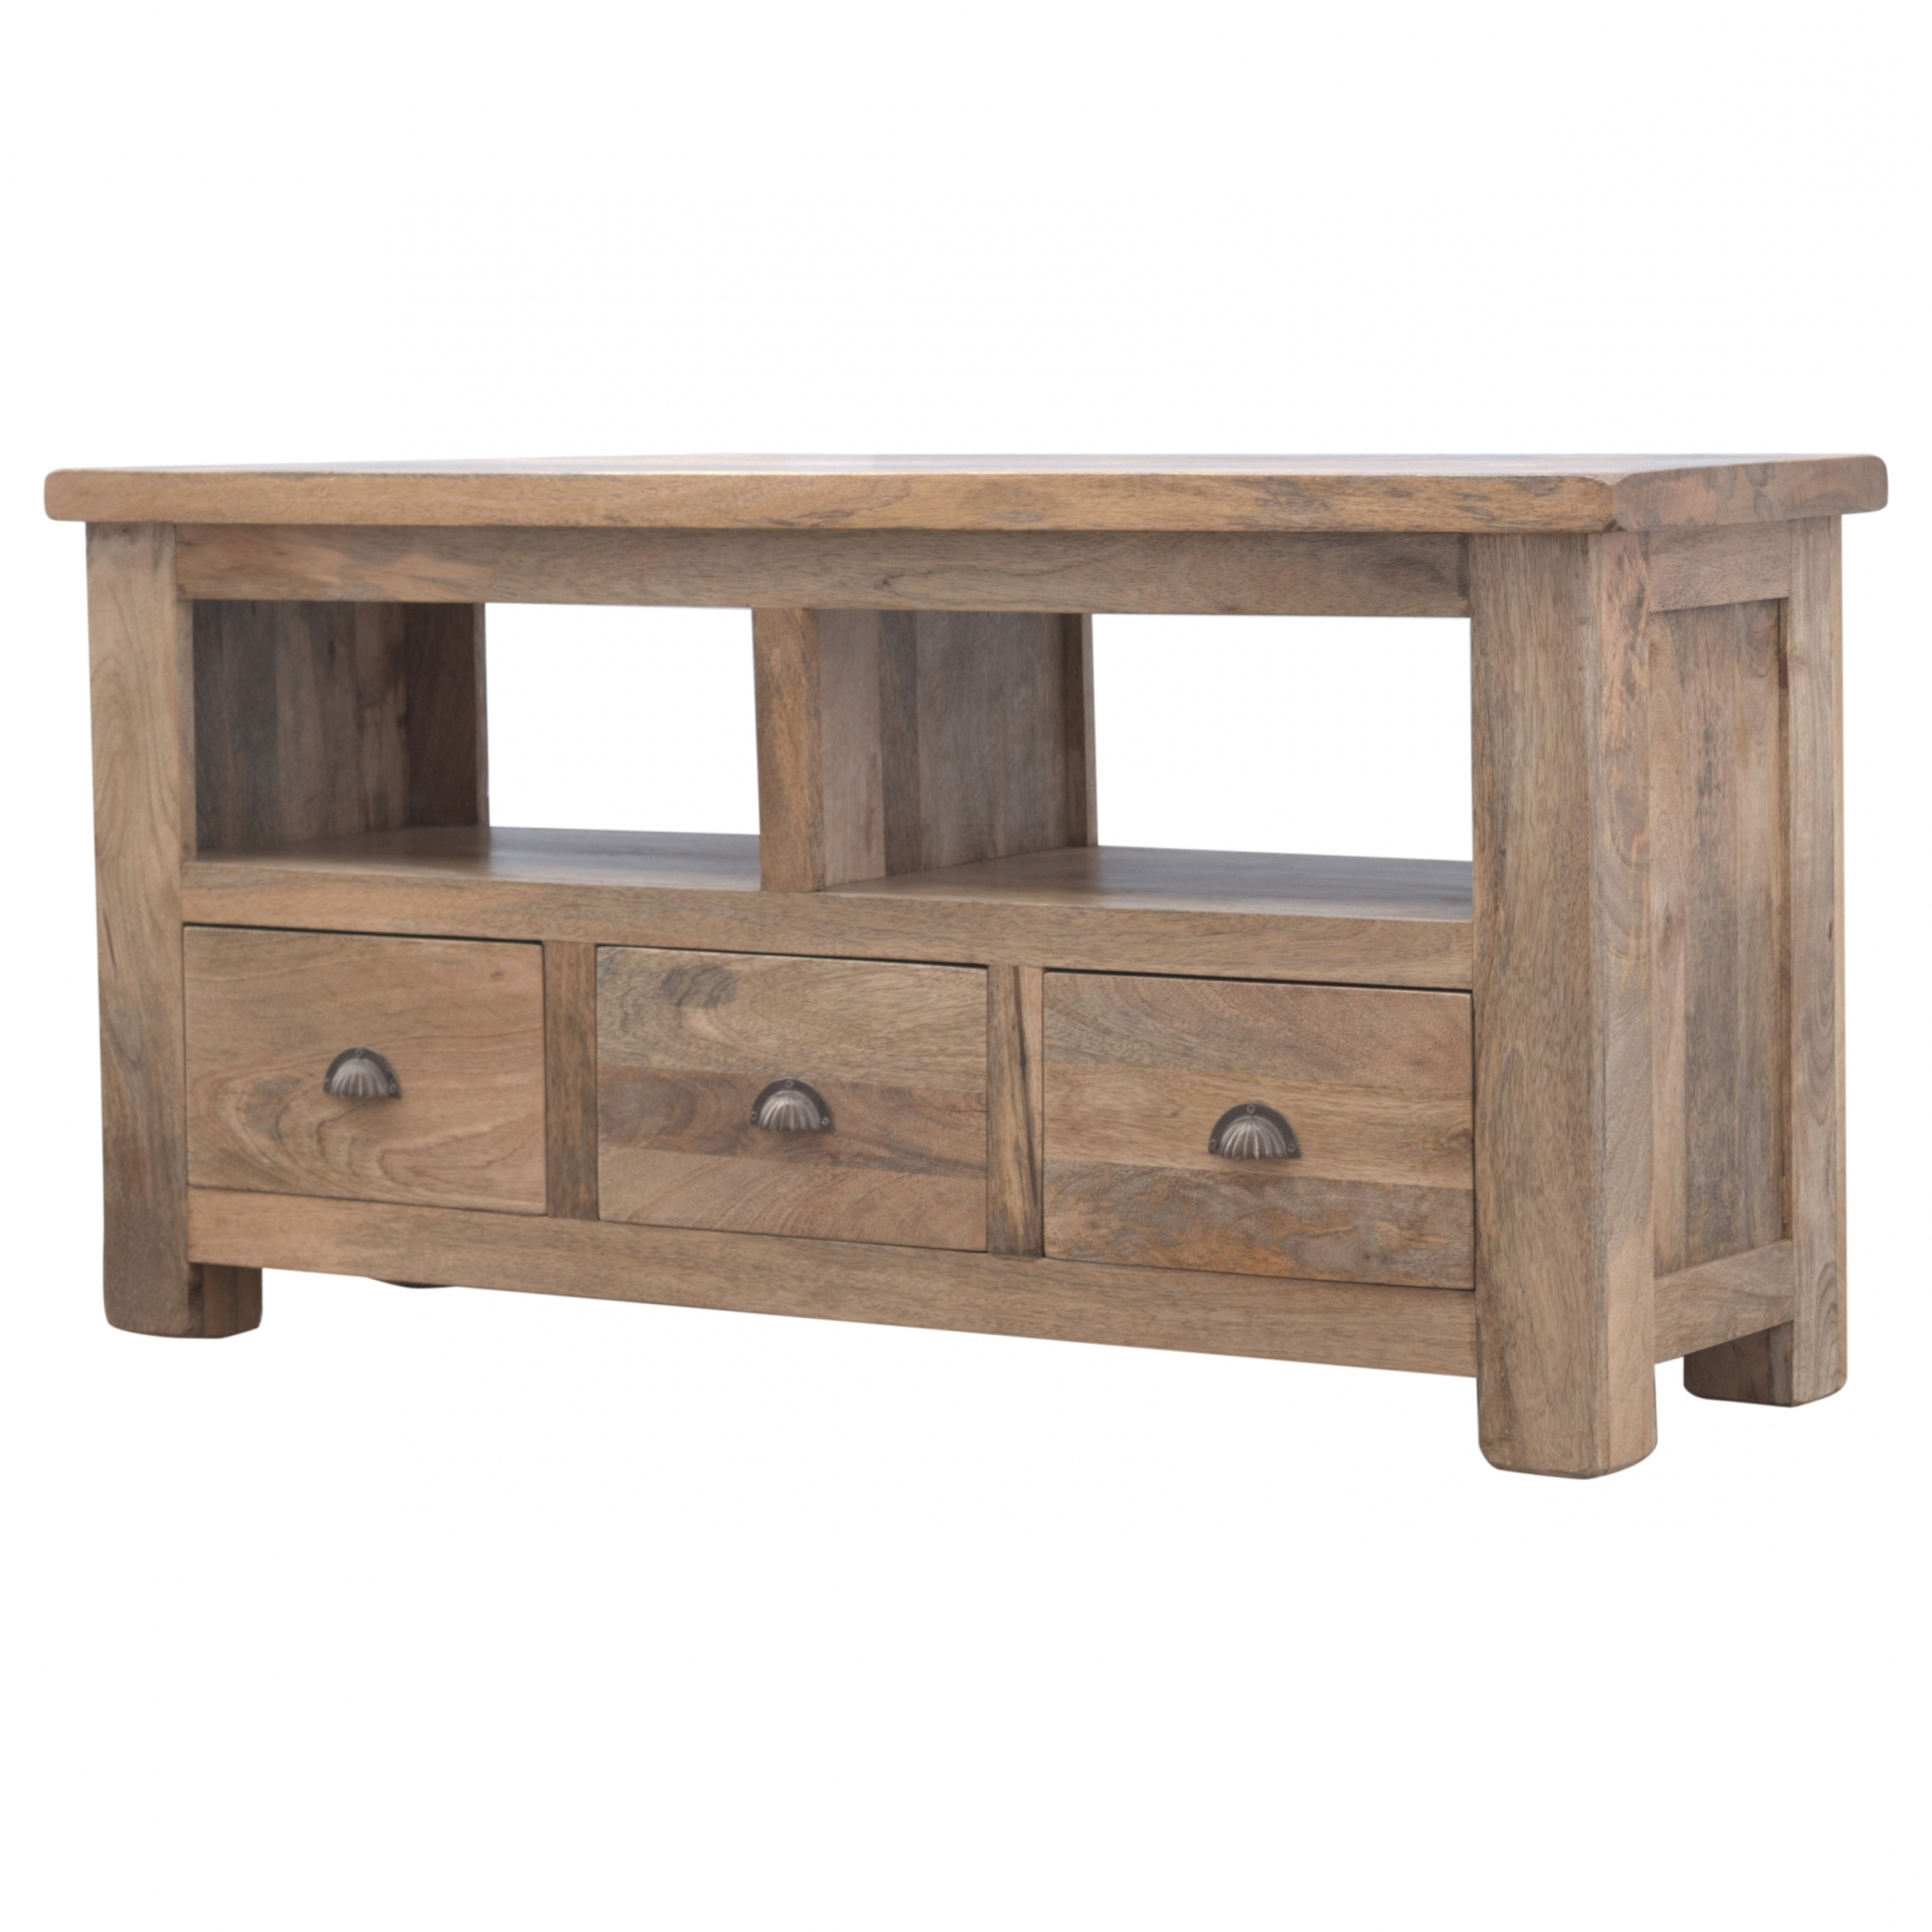 Tv Stands With Drawers And Shelves Throughout Trendy Handmade Mango 3 Drawer 1 Shelf Tv Stand (View 8 of 20)